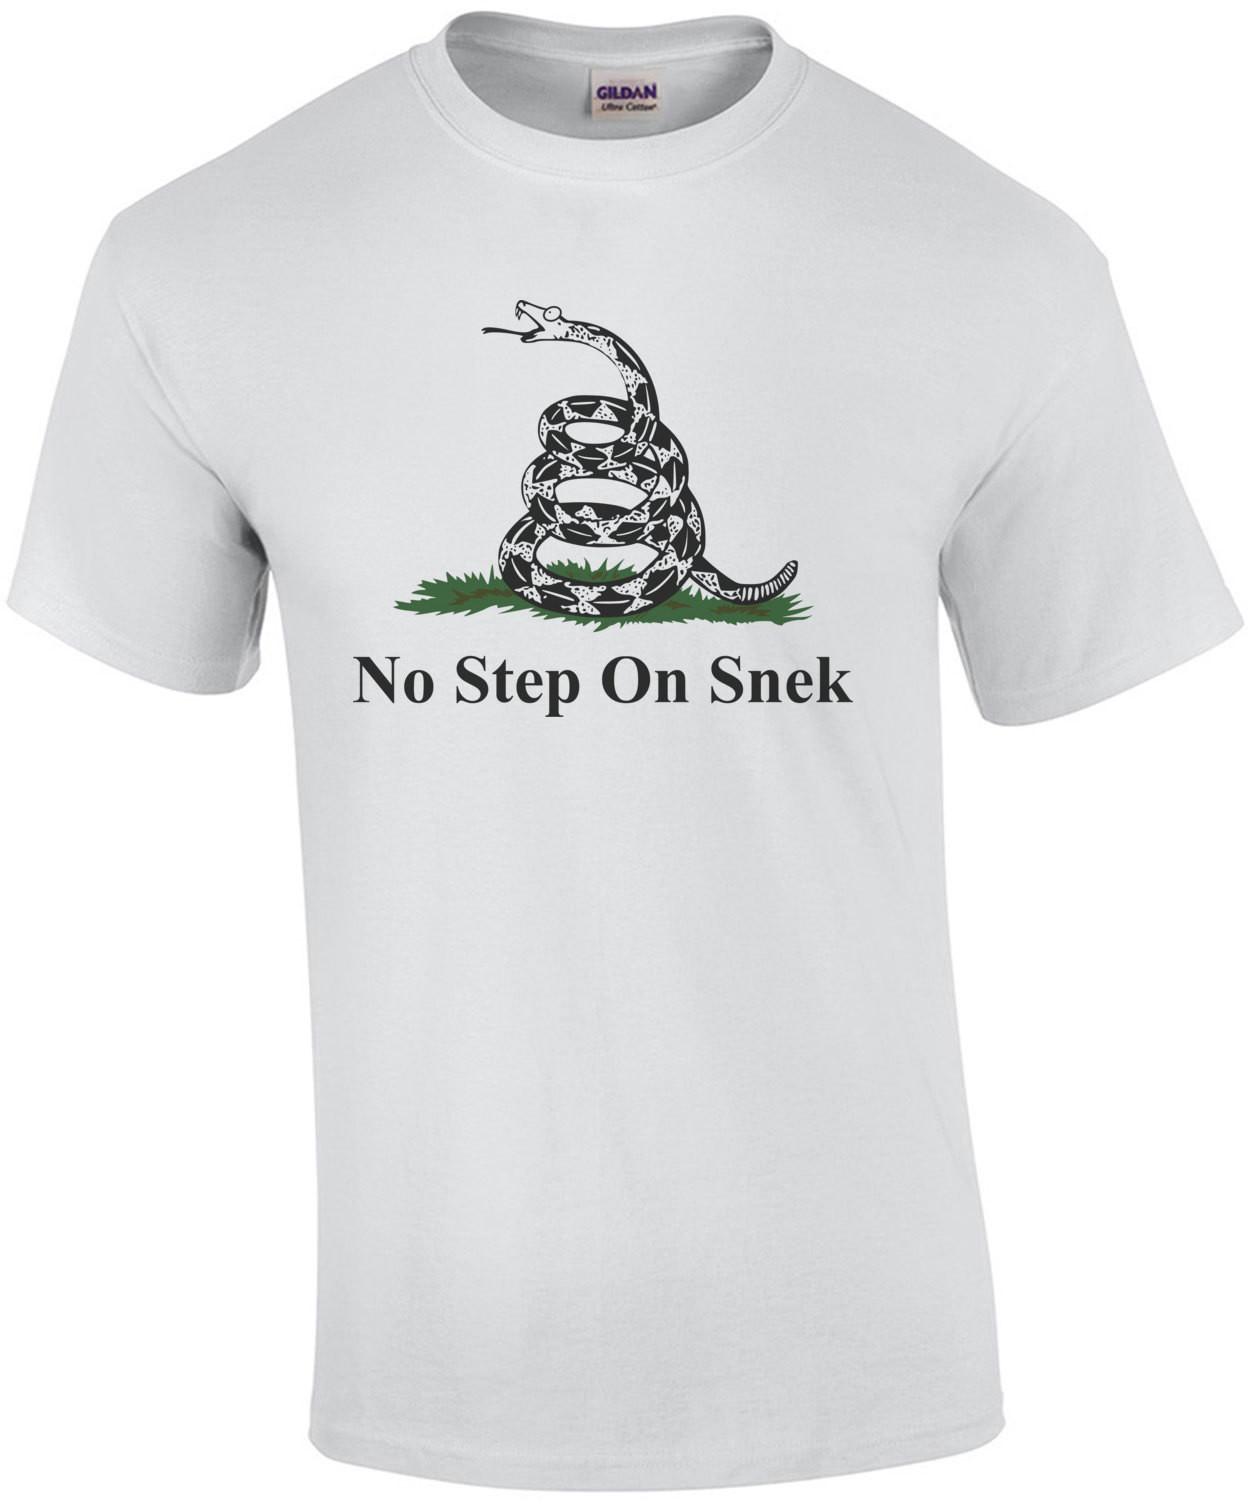 No Step on Snek Funny Shirt